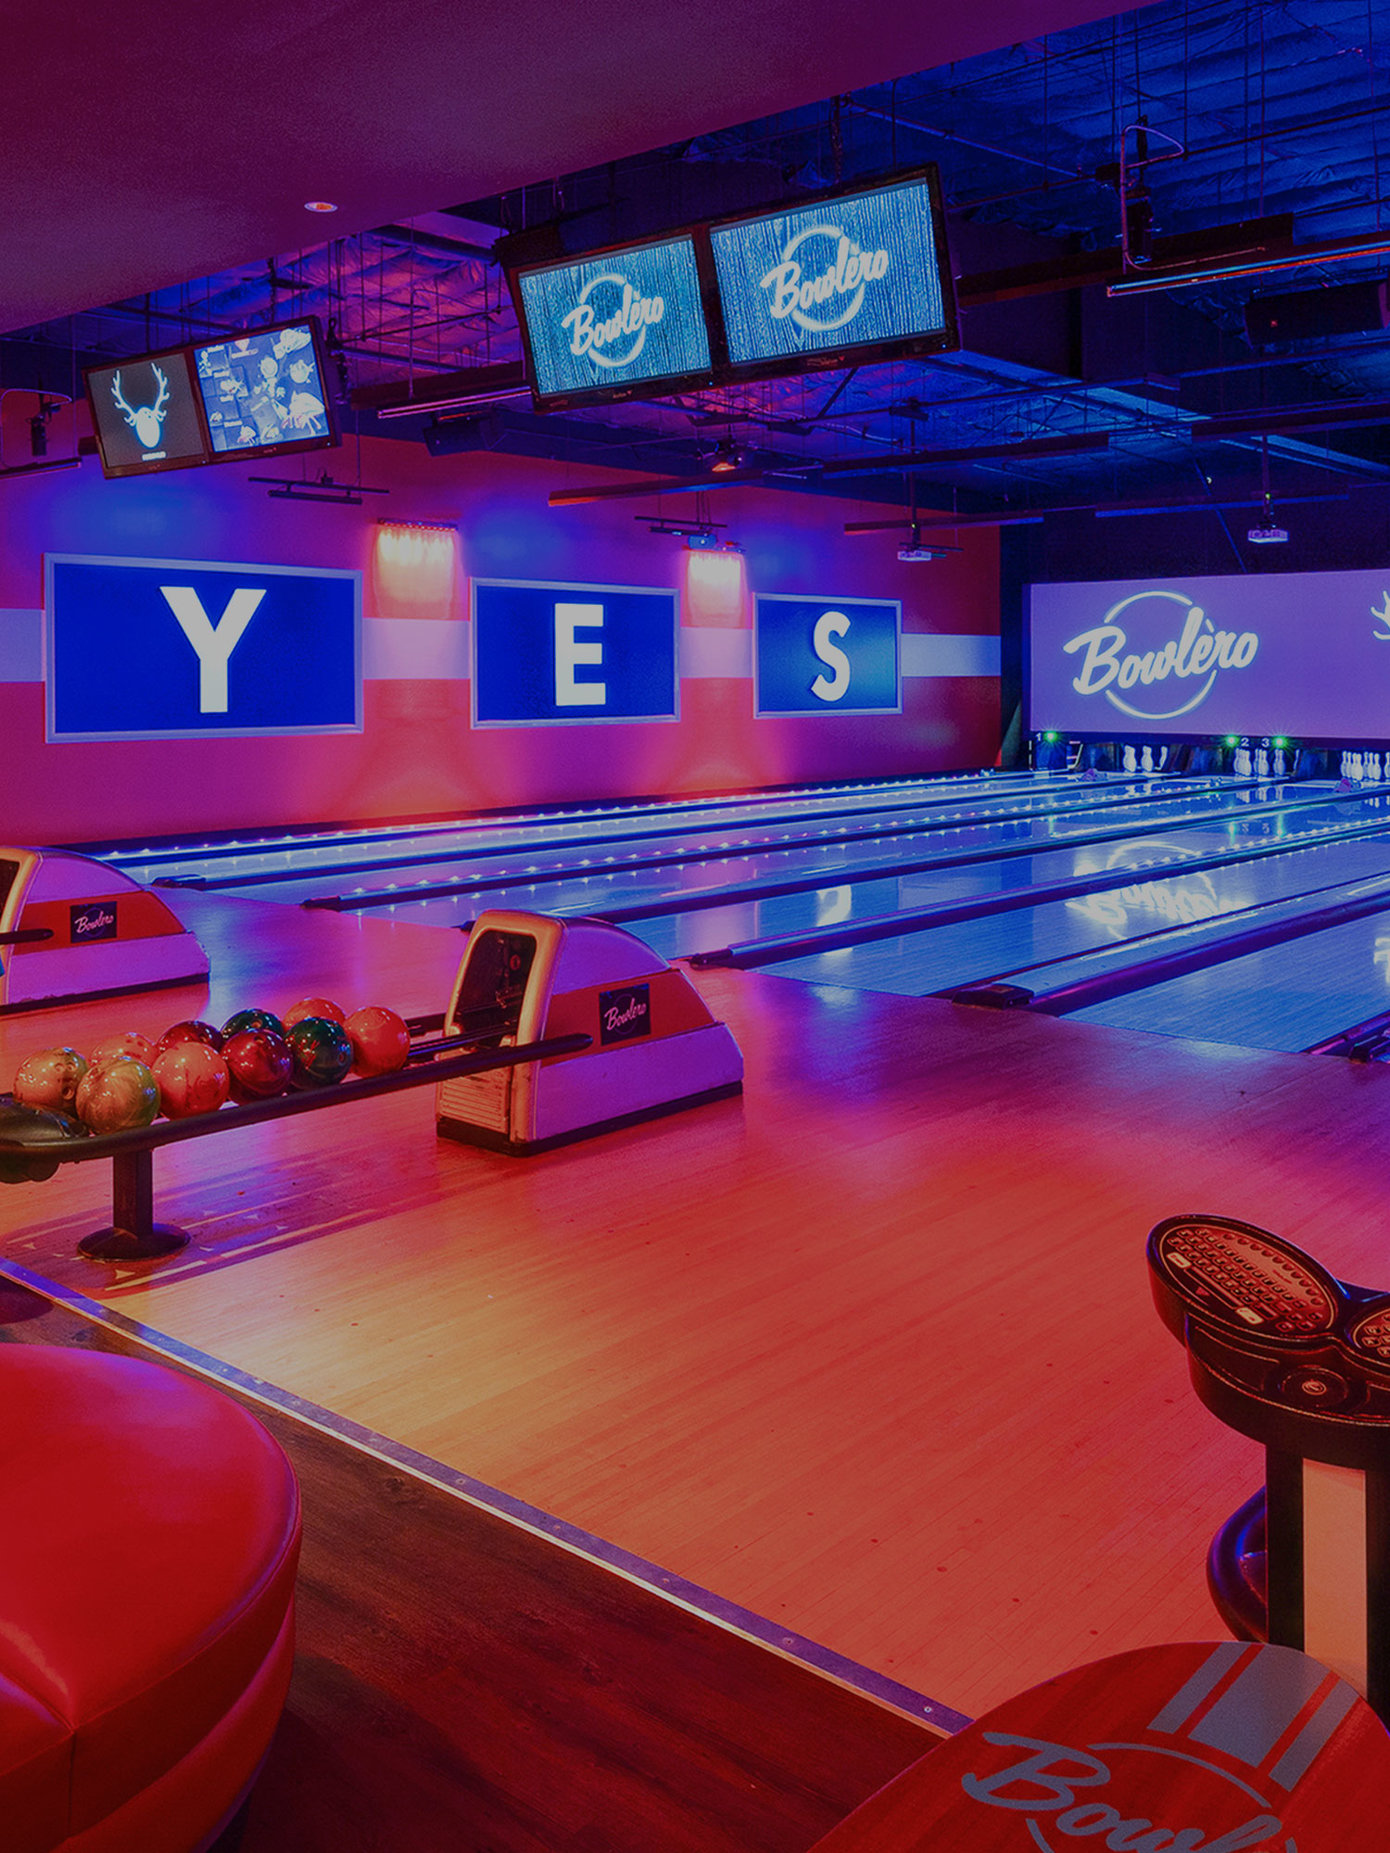 image of bowling lanes facing the pins, with 'y - e - s' written on the wall